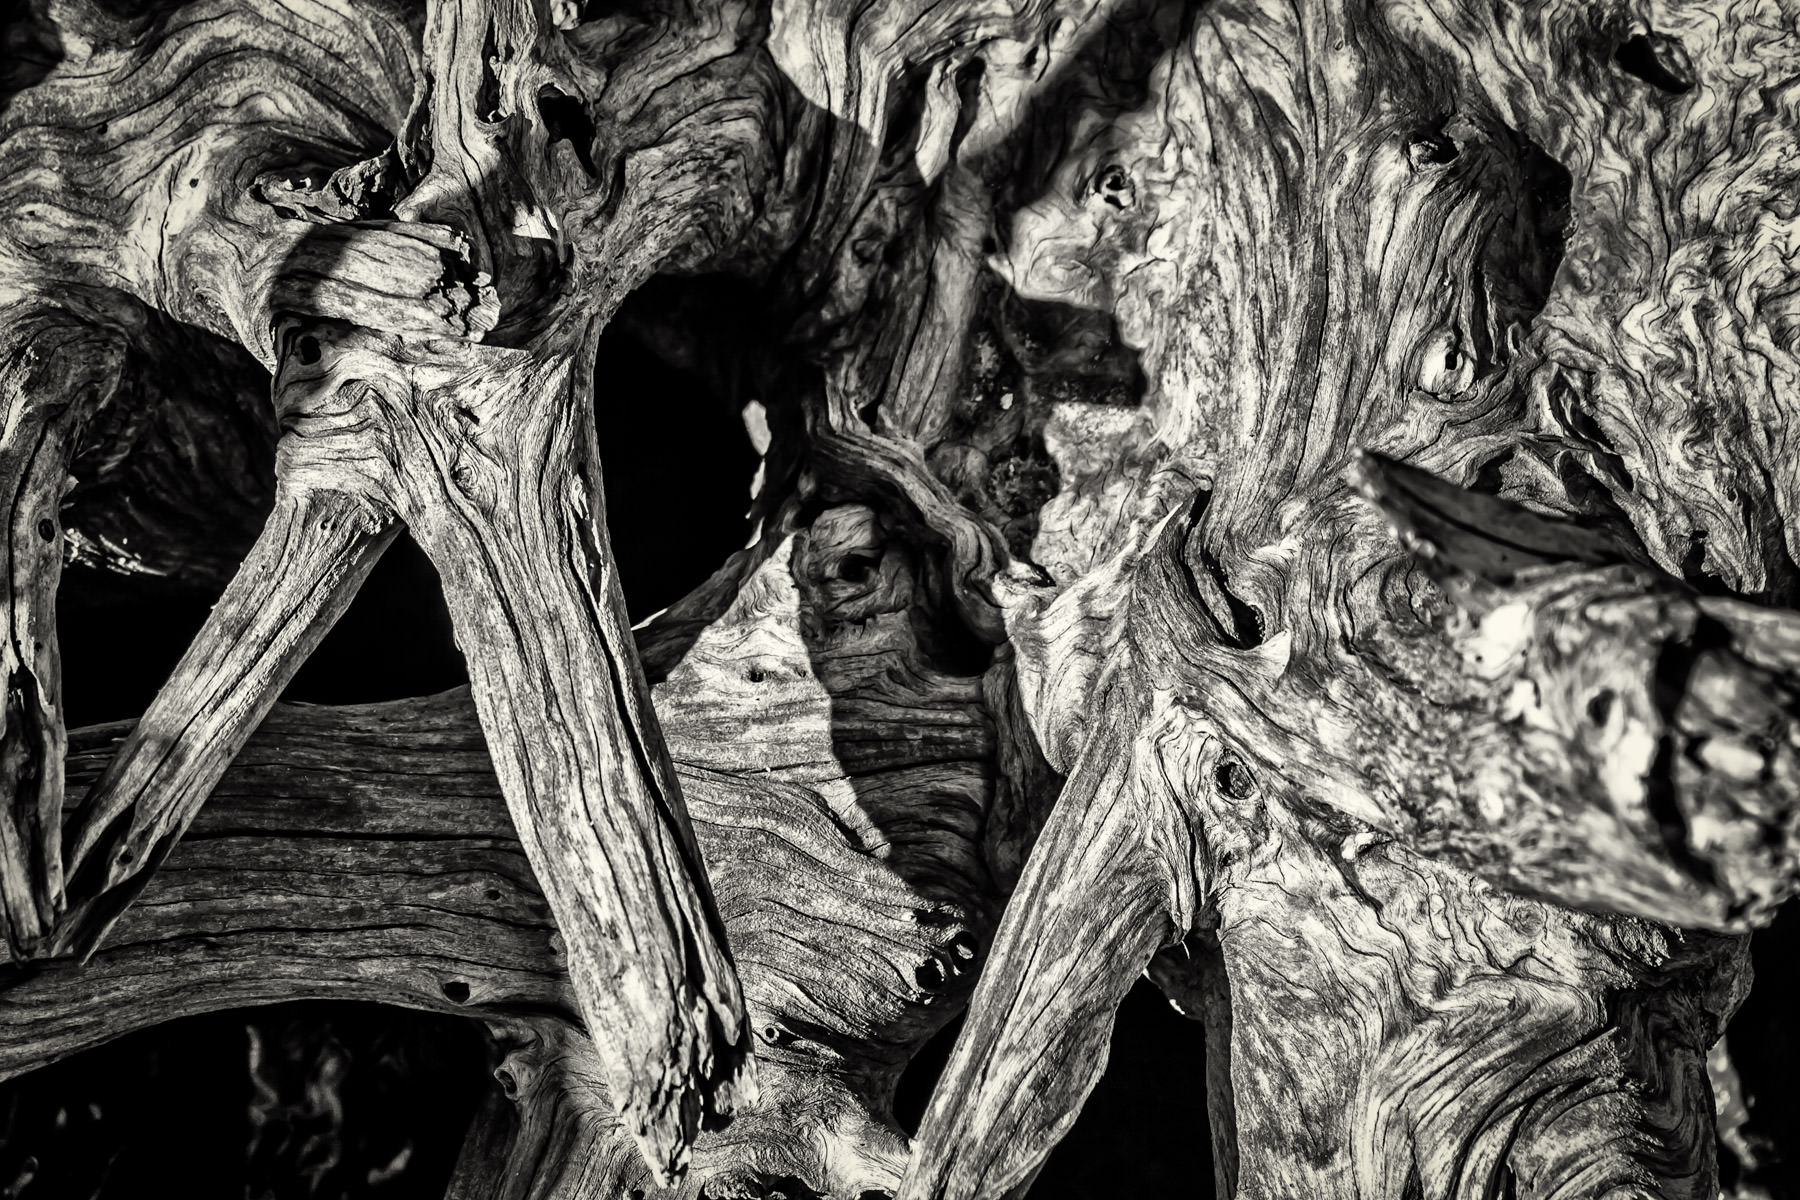 Textures abound in this interesting East Texas find of dead tree branches.